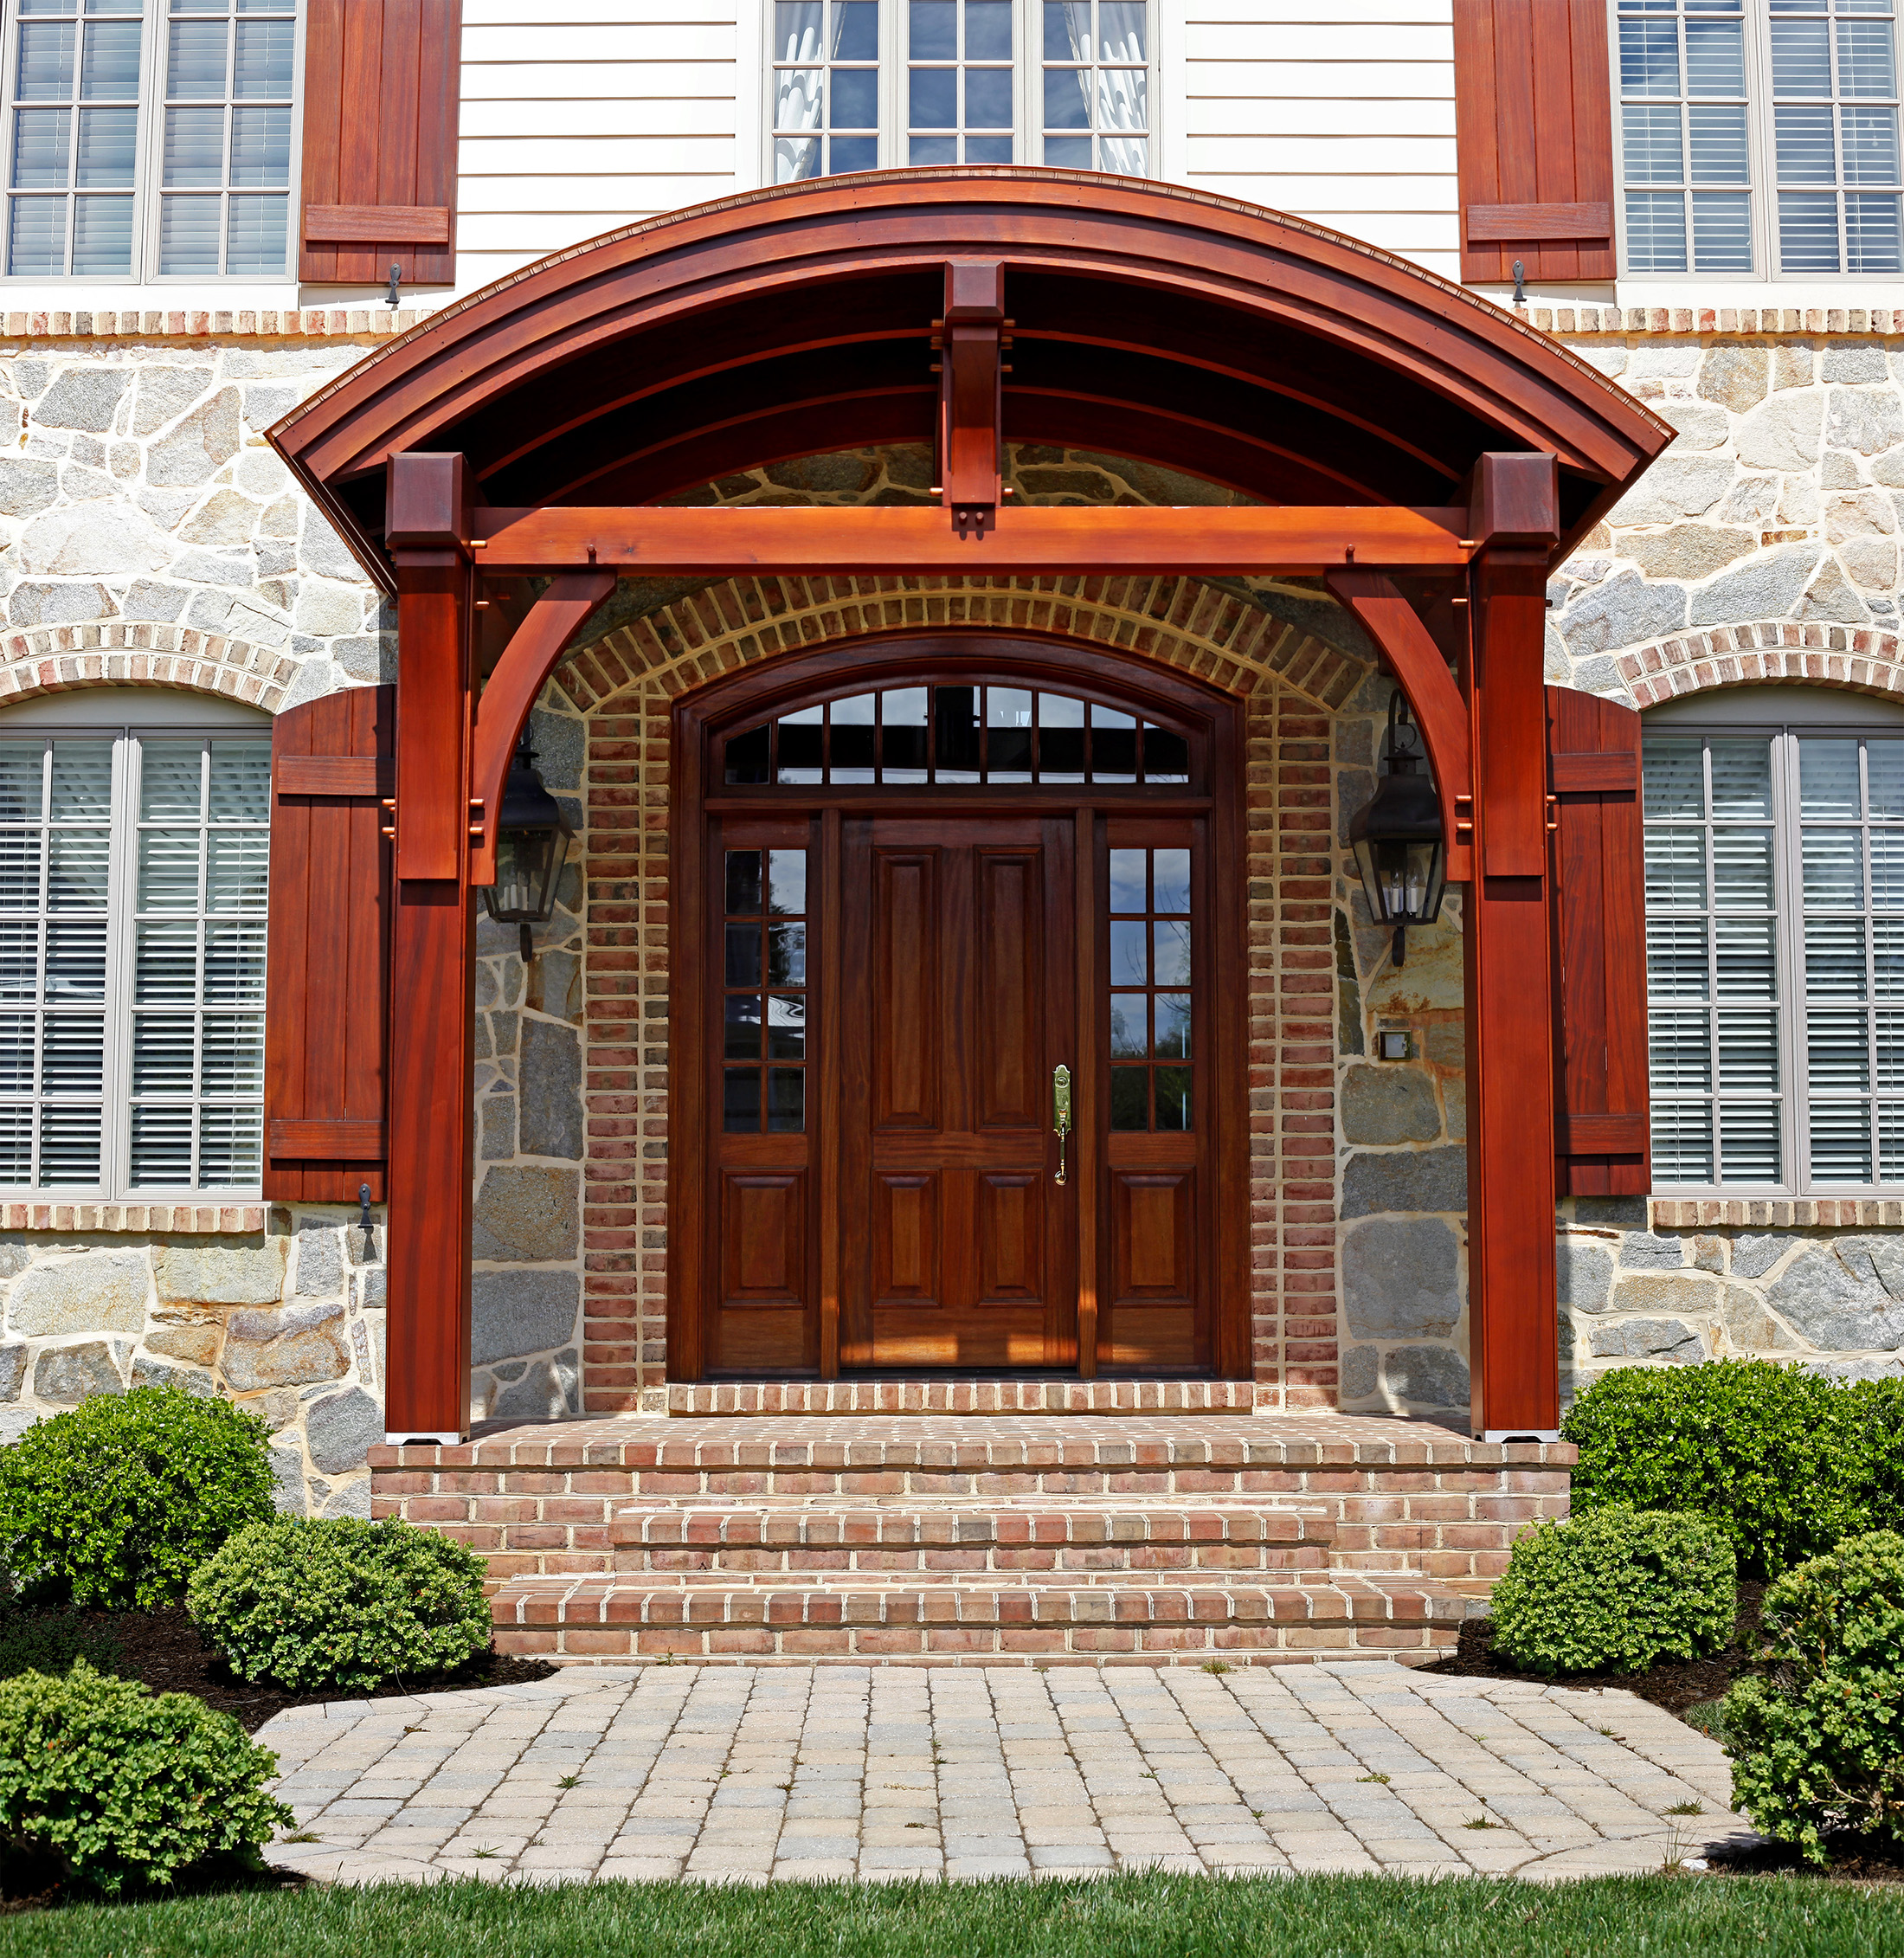 Mahogany front door and entrance way